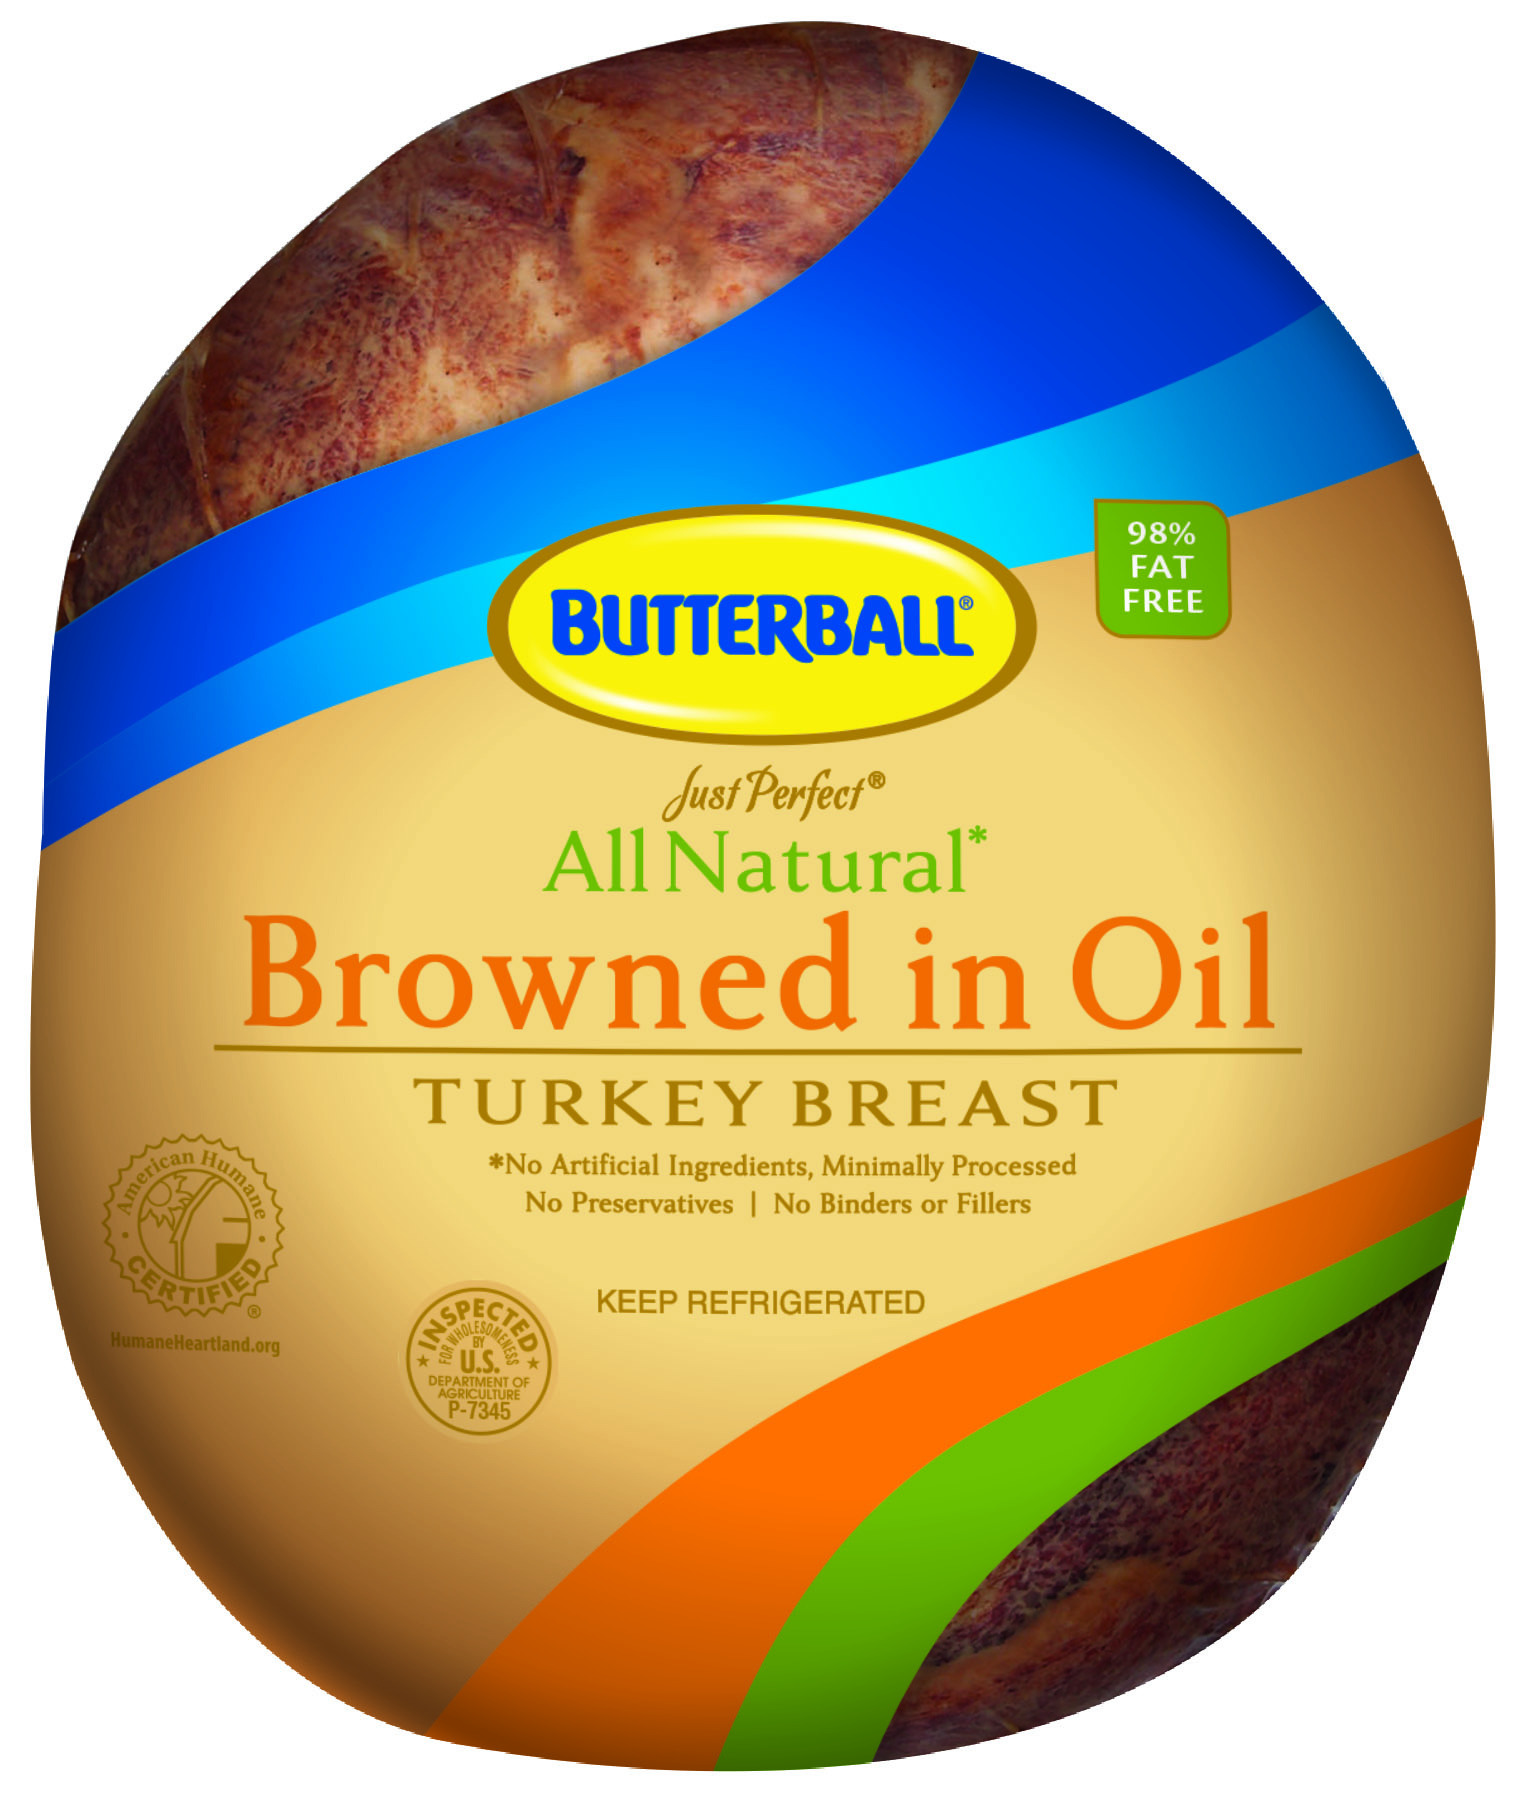 Just Perfect Handcrafted All Natural Oil Browned Turkey Breast